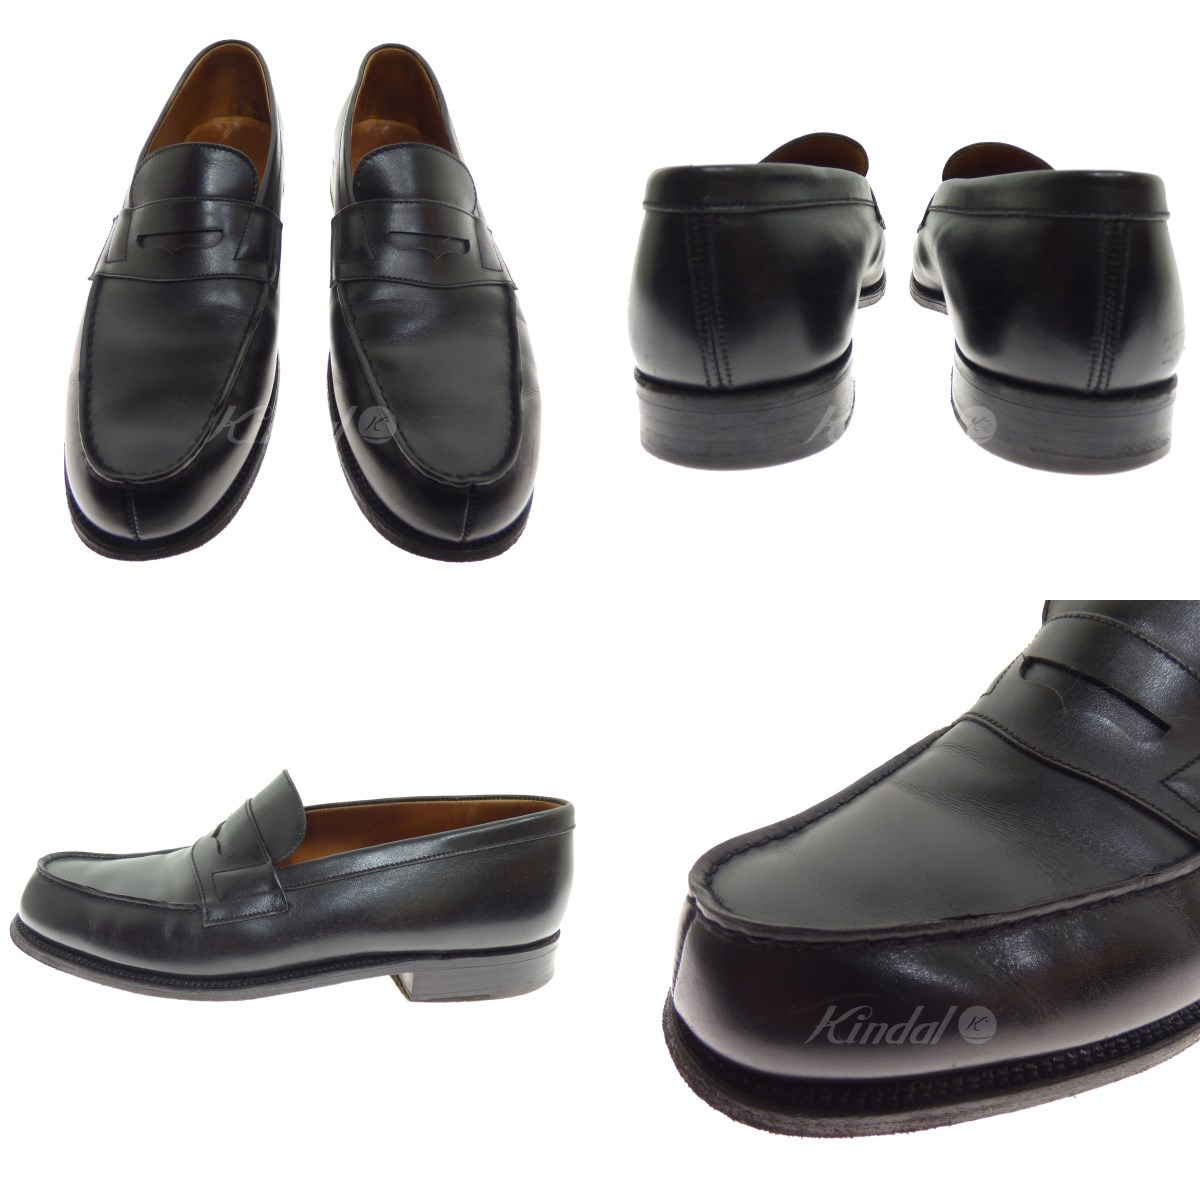 b23955f8c51 kindal  J. M. WESTON 180 loafer black size  5 1 2 (Jay M Weston ...